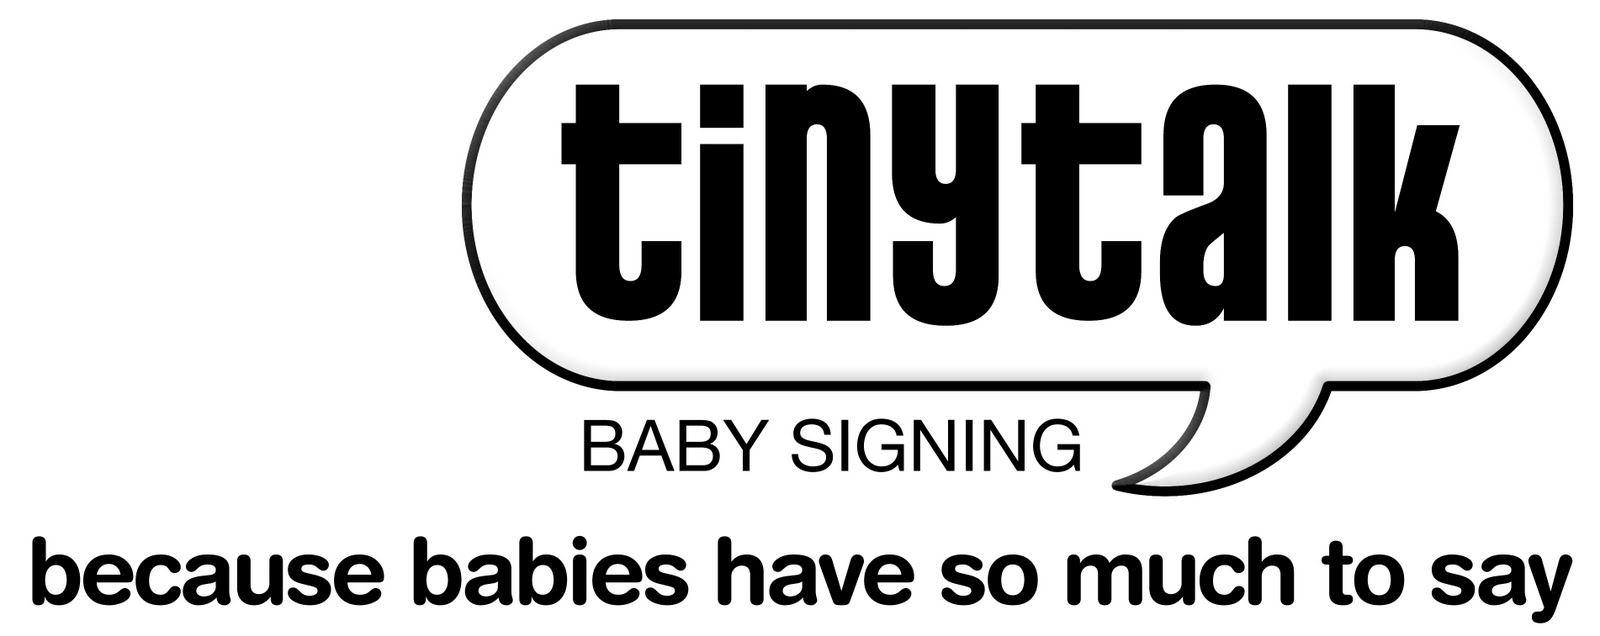 the TinyTalker: What's On For Little Ones Awards